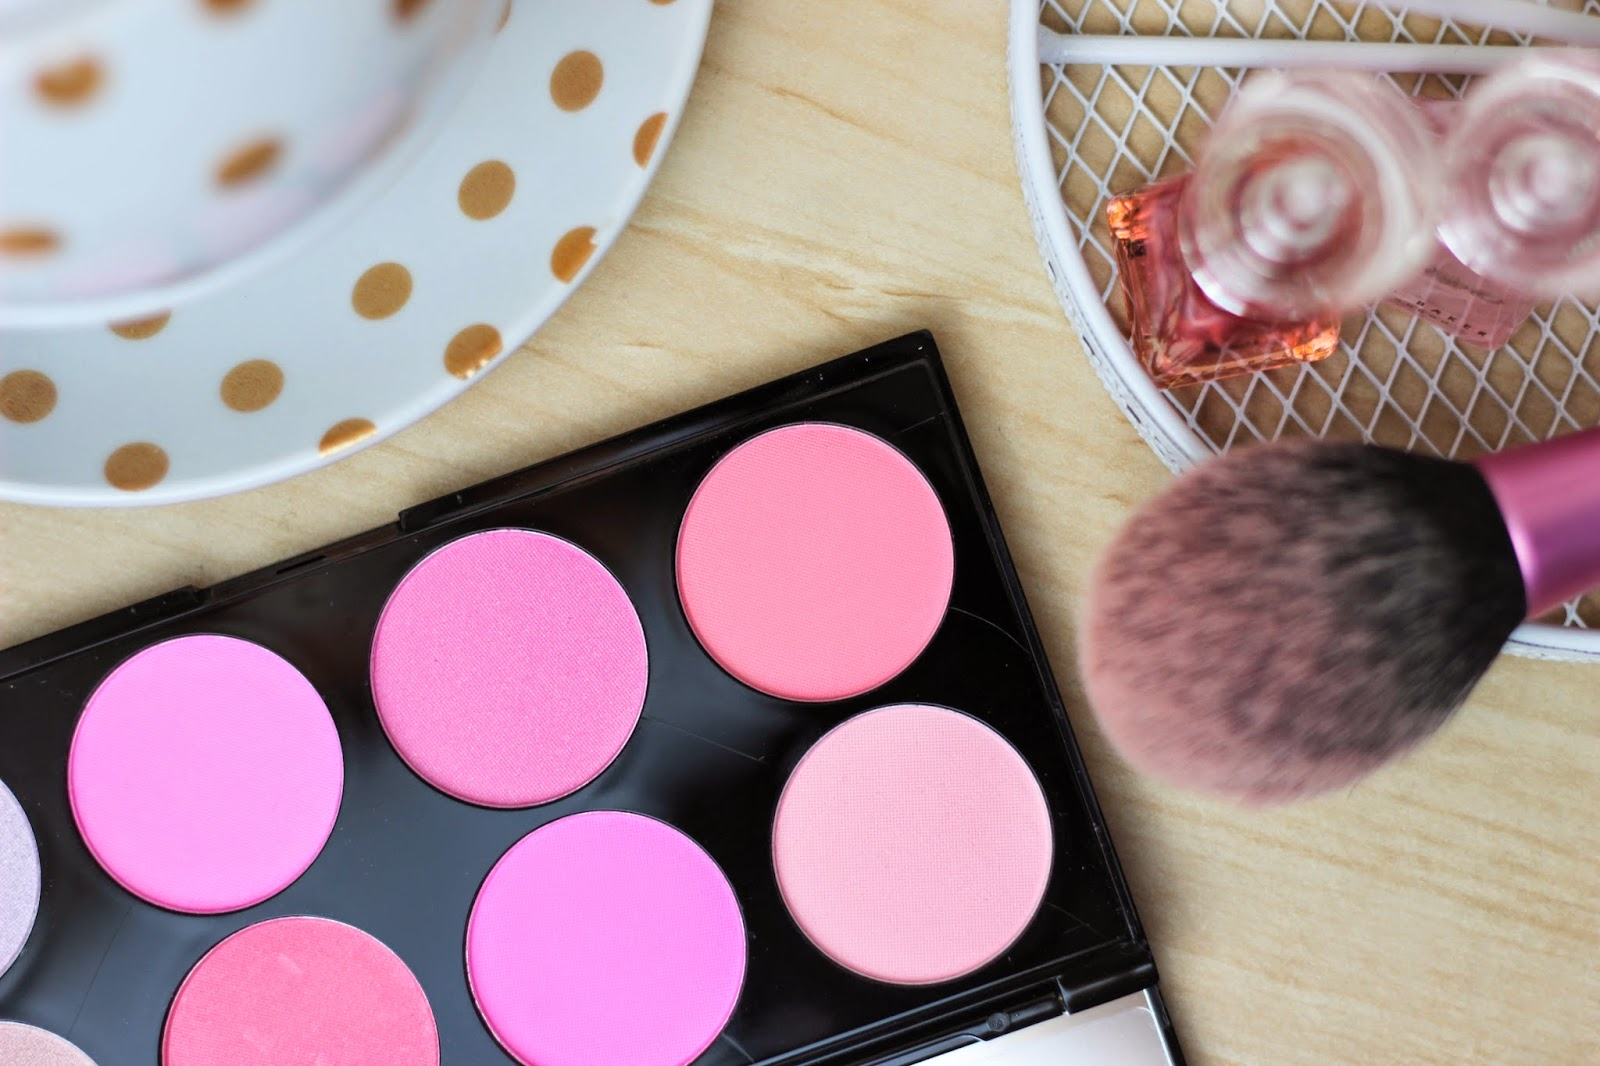 Makeup Revolution Ultra Blush Palette All About Pink Charley Lucy Make Up If You Read Yesterdays Post The In Golden Sugar Youll Know That I Criticised Its Lack Of Bright Matte